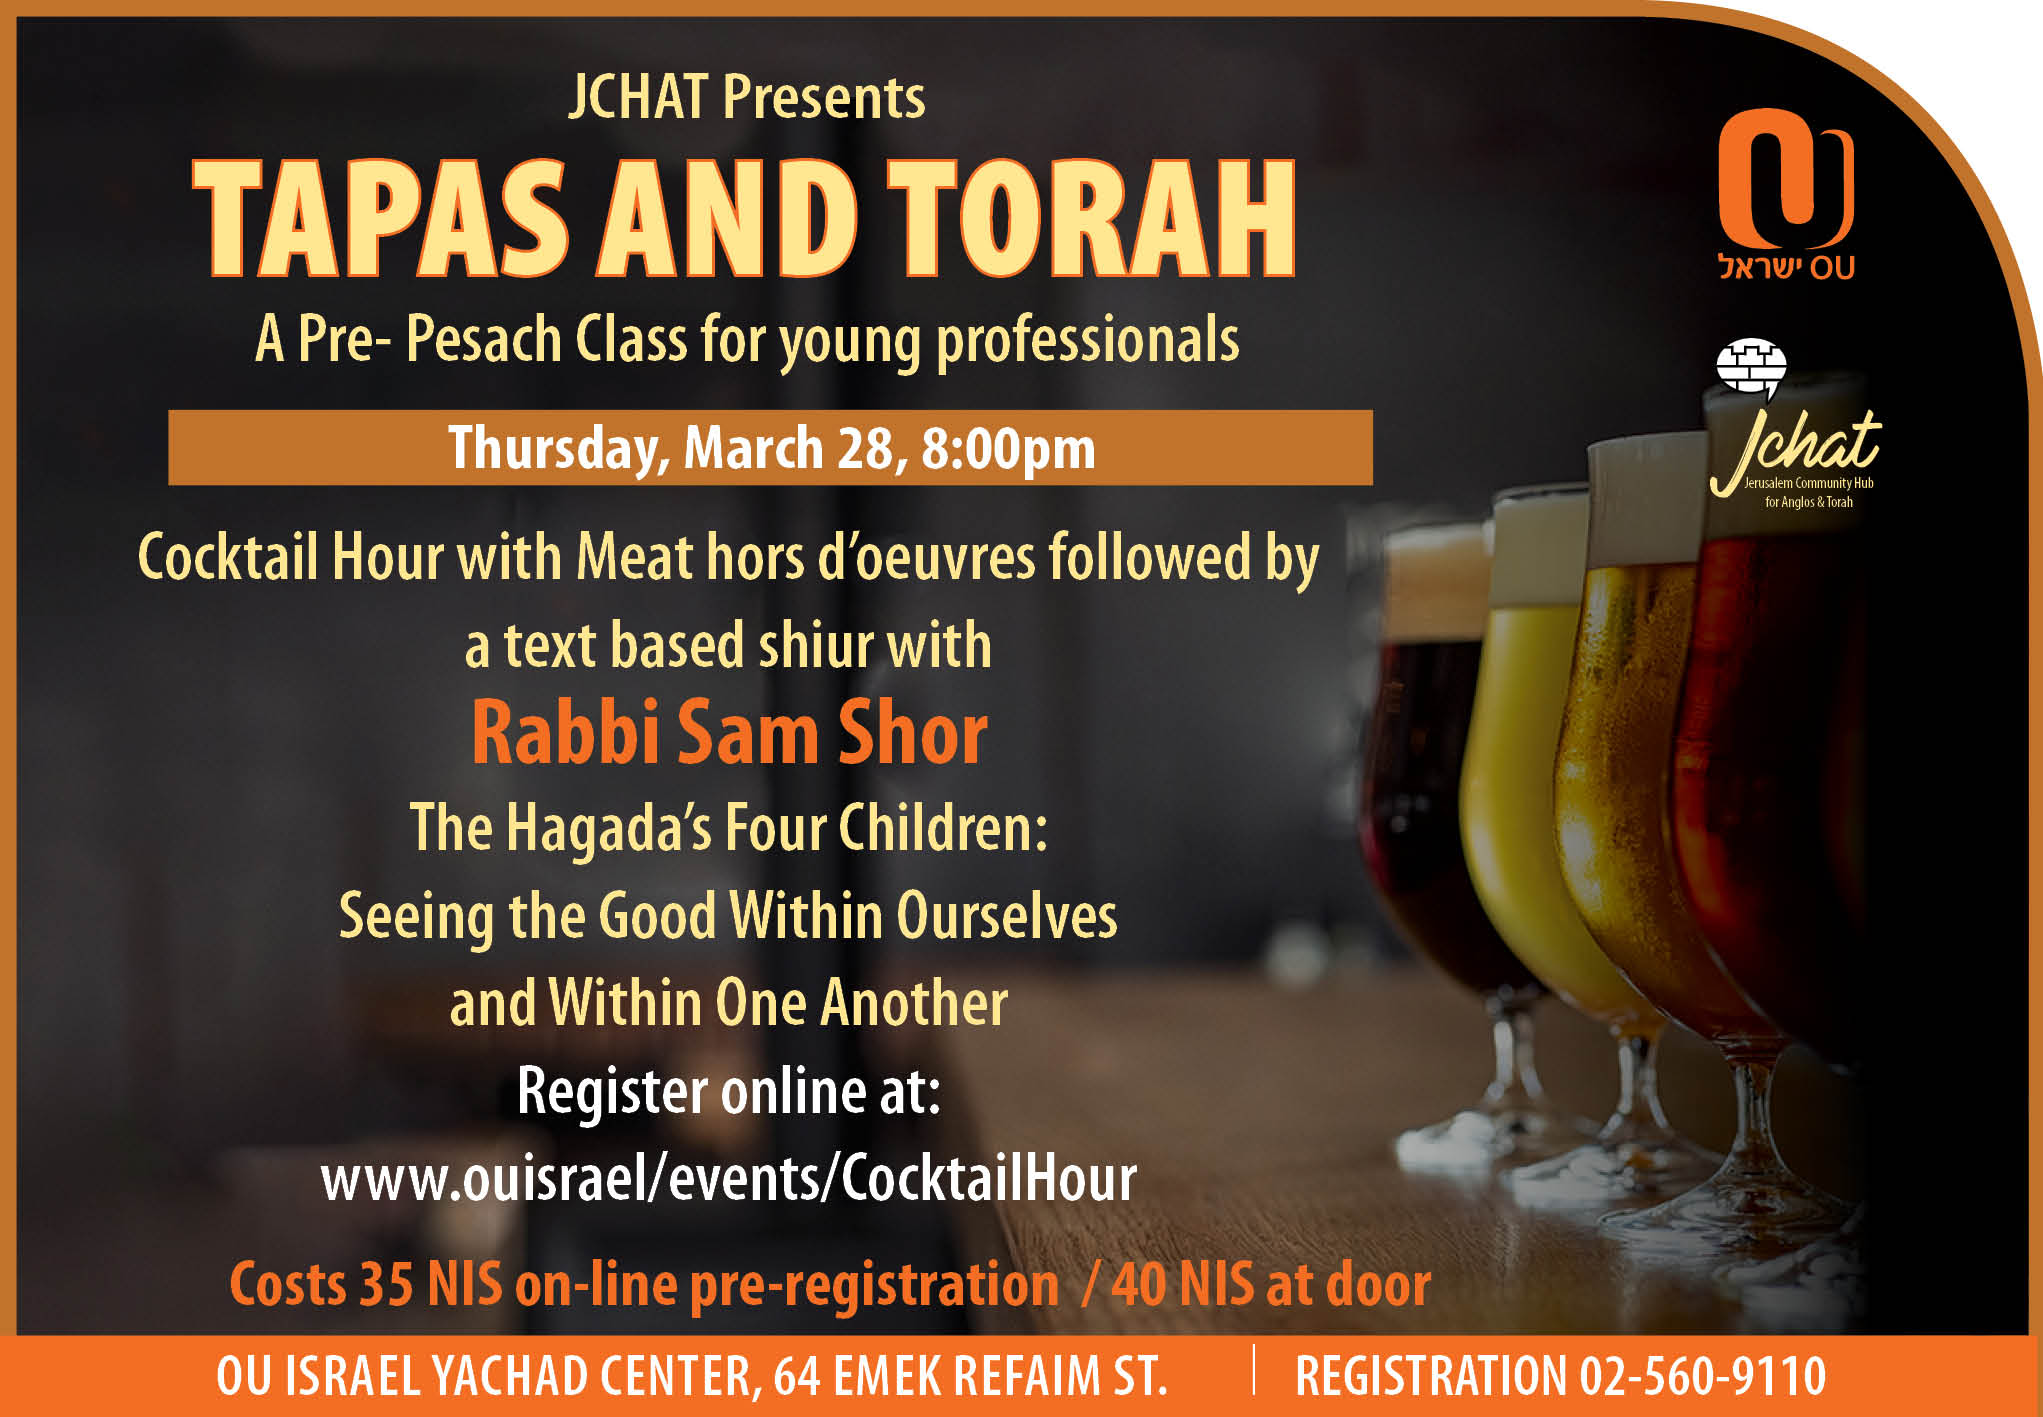 Tapas and Torah-A Pre Pesach Class for Young Professionals